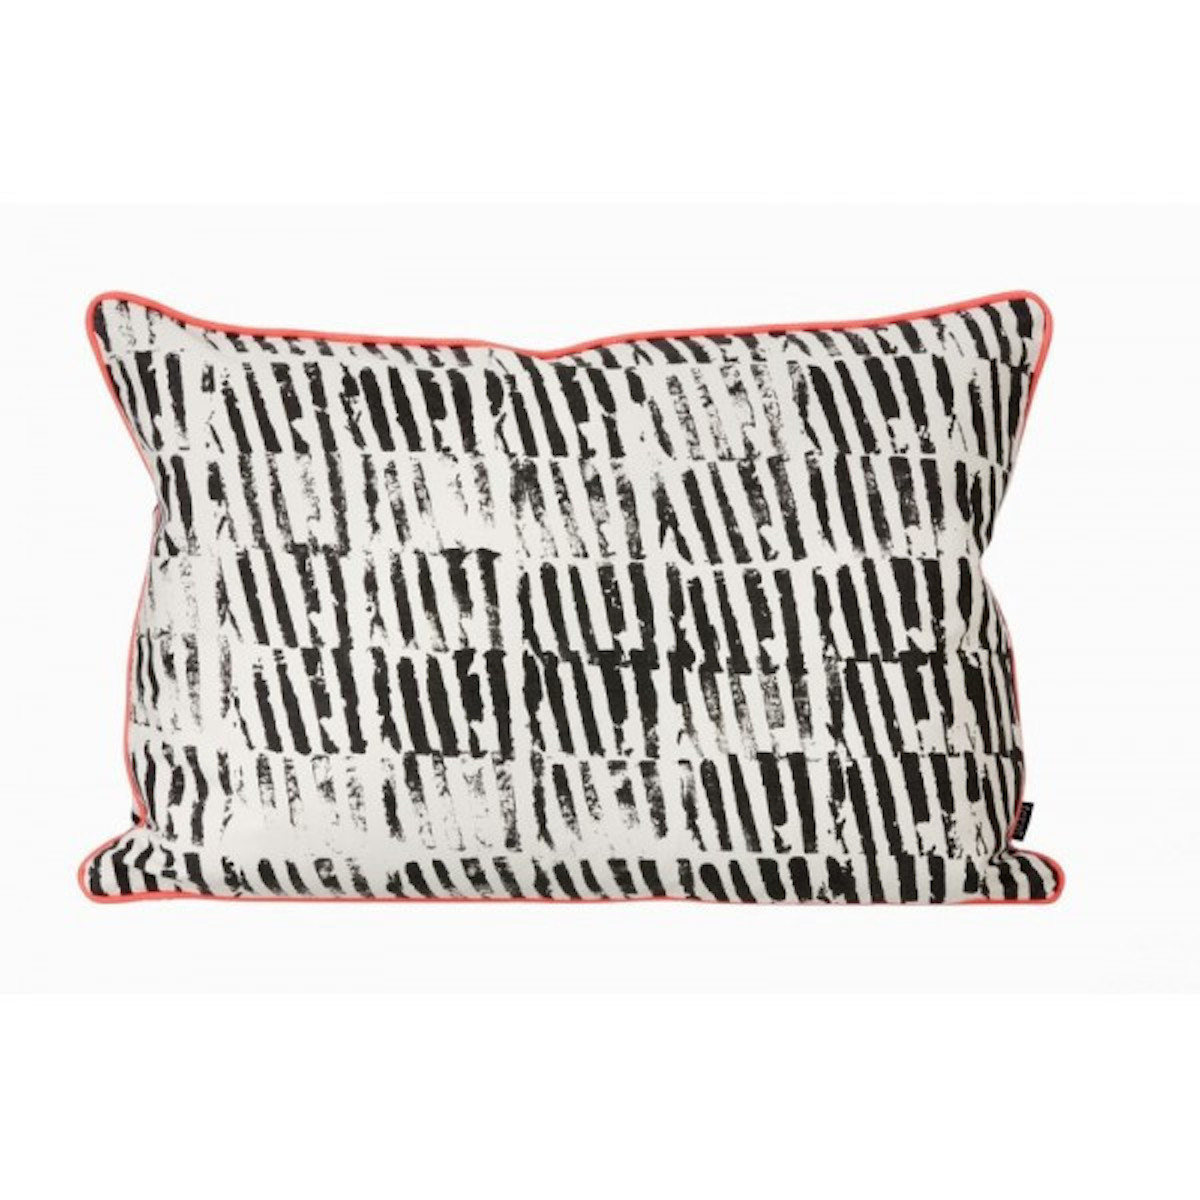 Black and White cushion